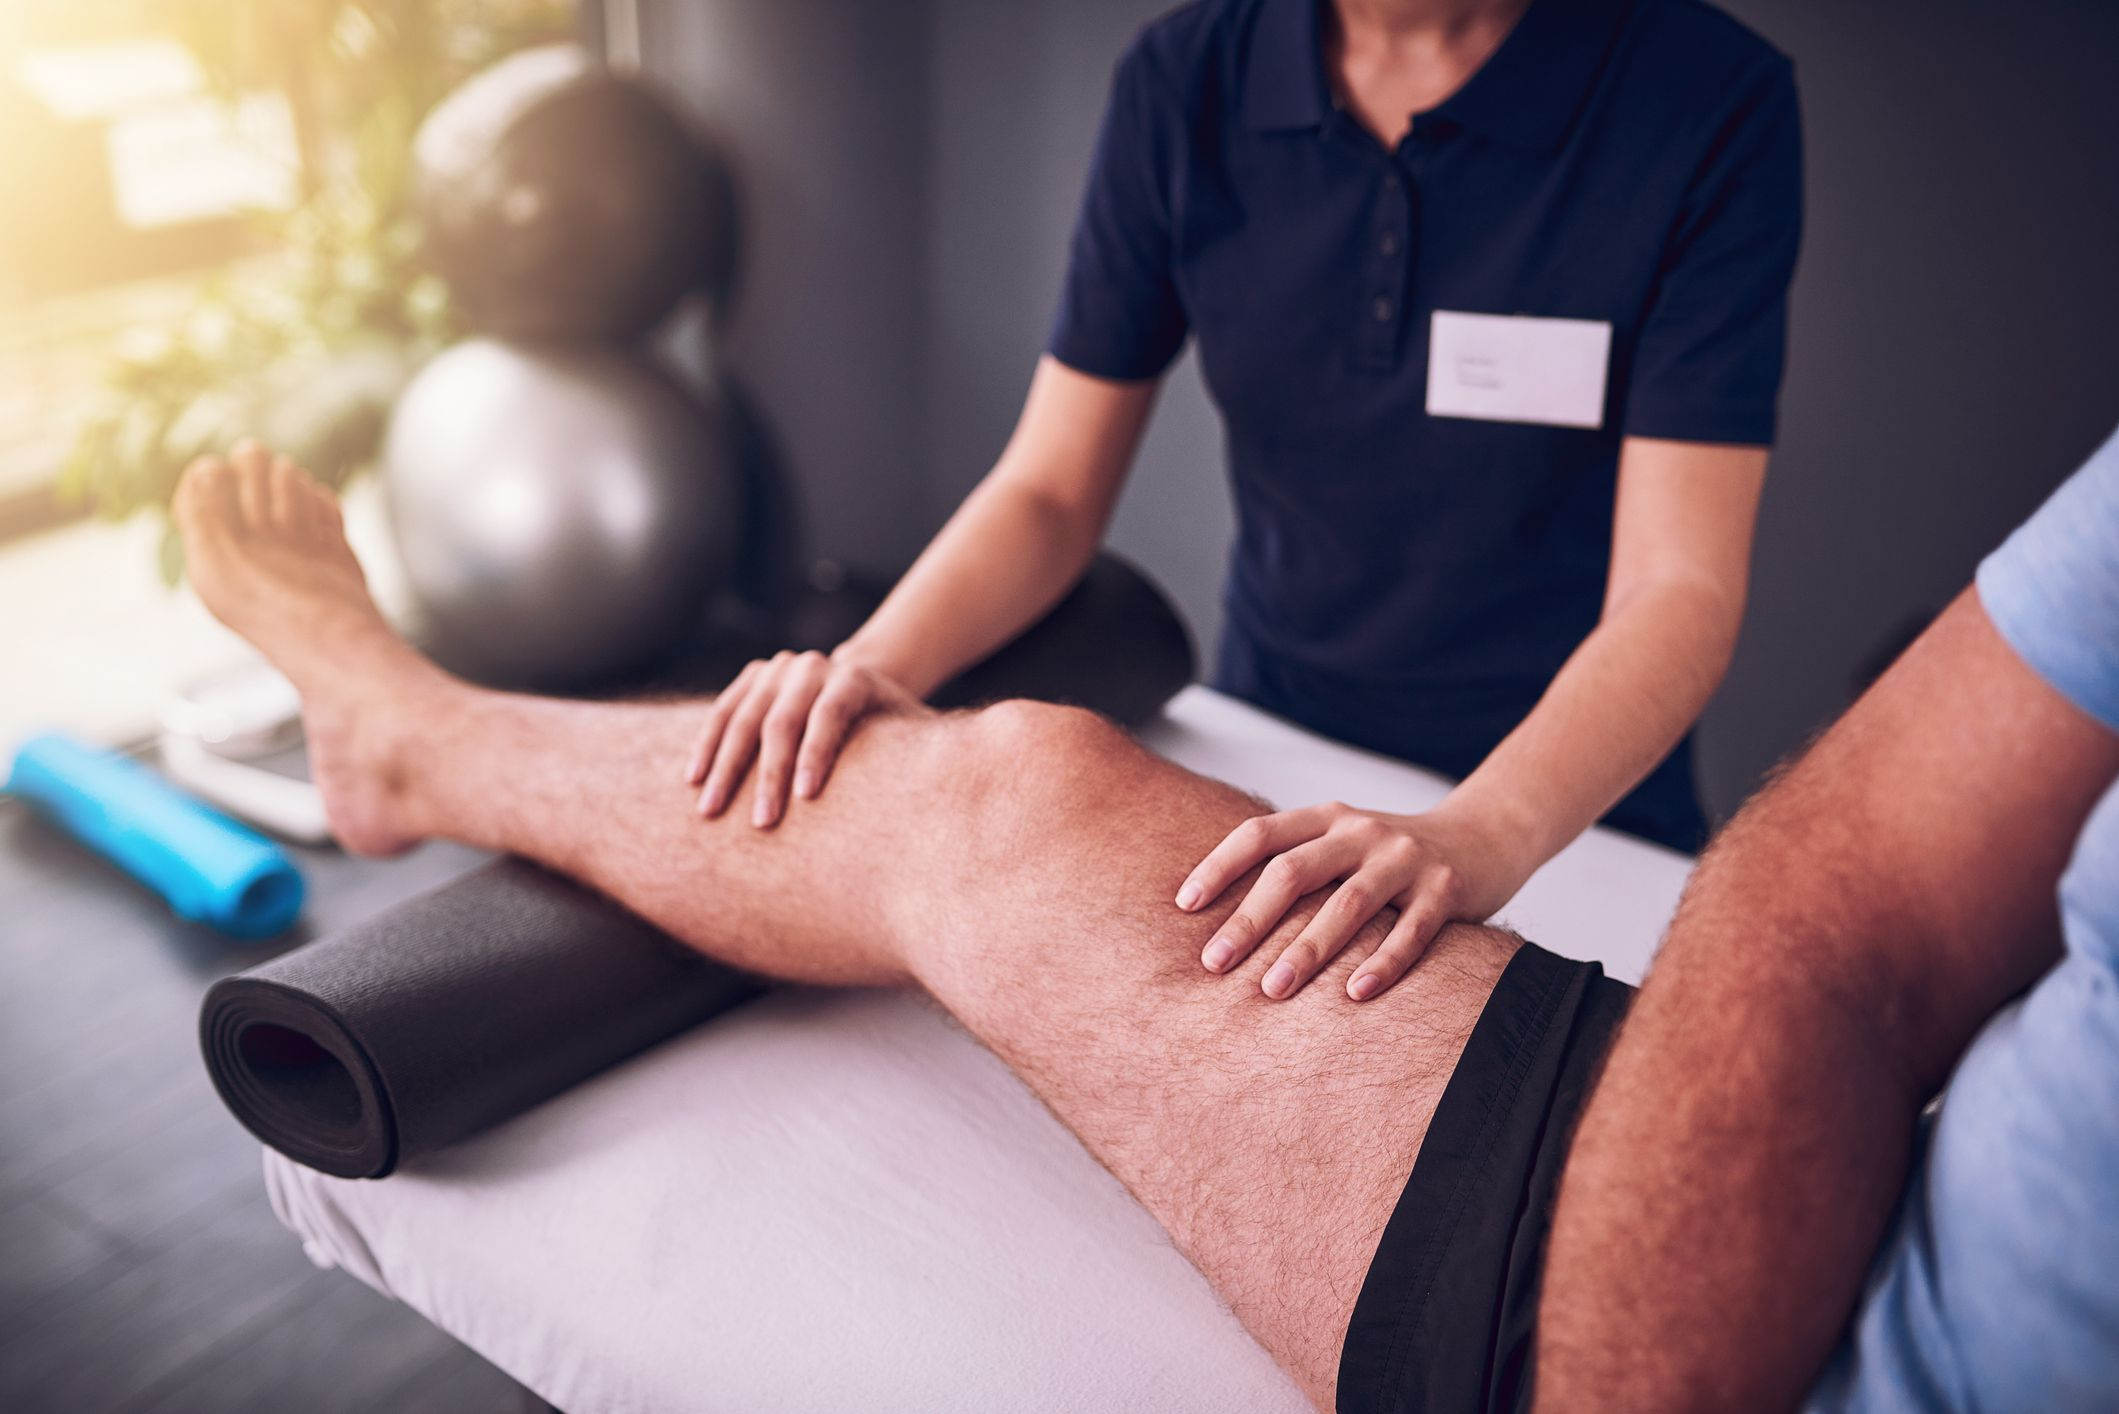 ec2a3d69679 4 causes of knee pain and how to fix them